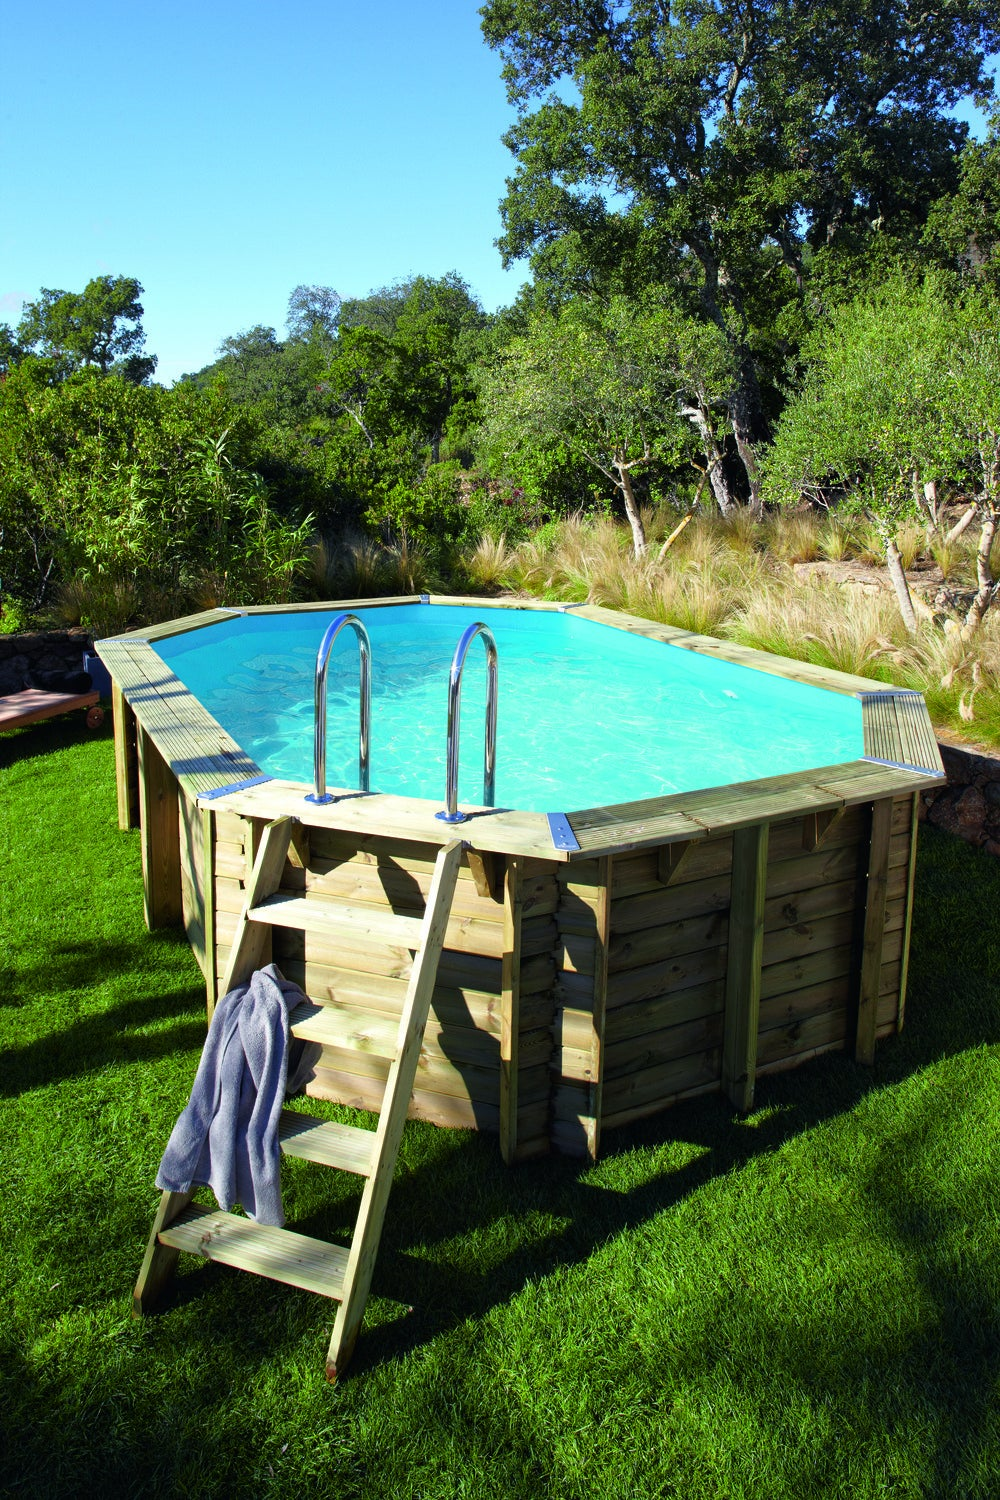 barriere piscine leroy merlin tout une piscine hors sol en bois pour petits et grands with. Black Bedroom Furniture Sets. Home Design Ideas